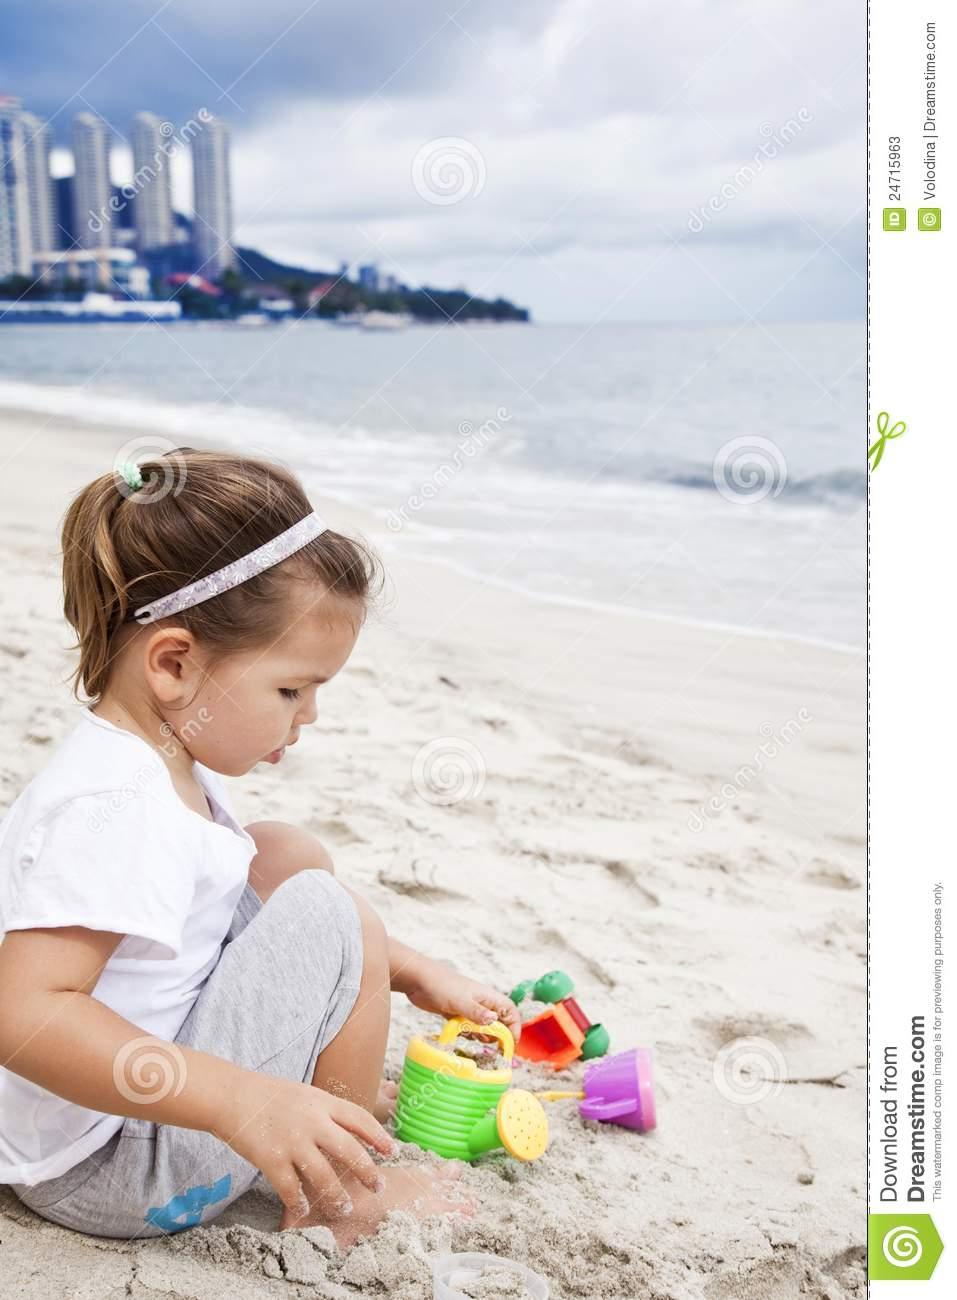 Beach Toys For Girls : Girl playing with beach toys stock photos image